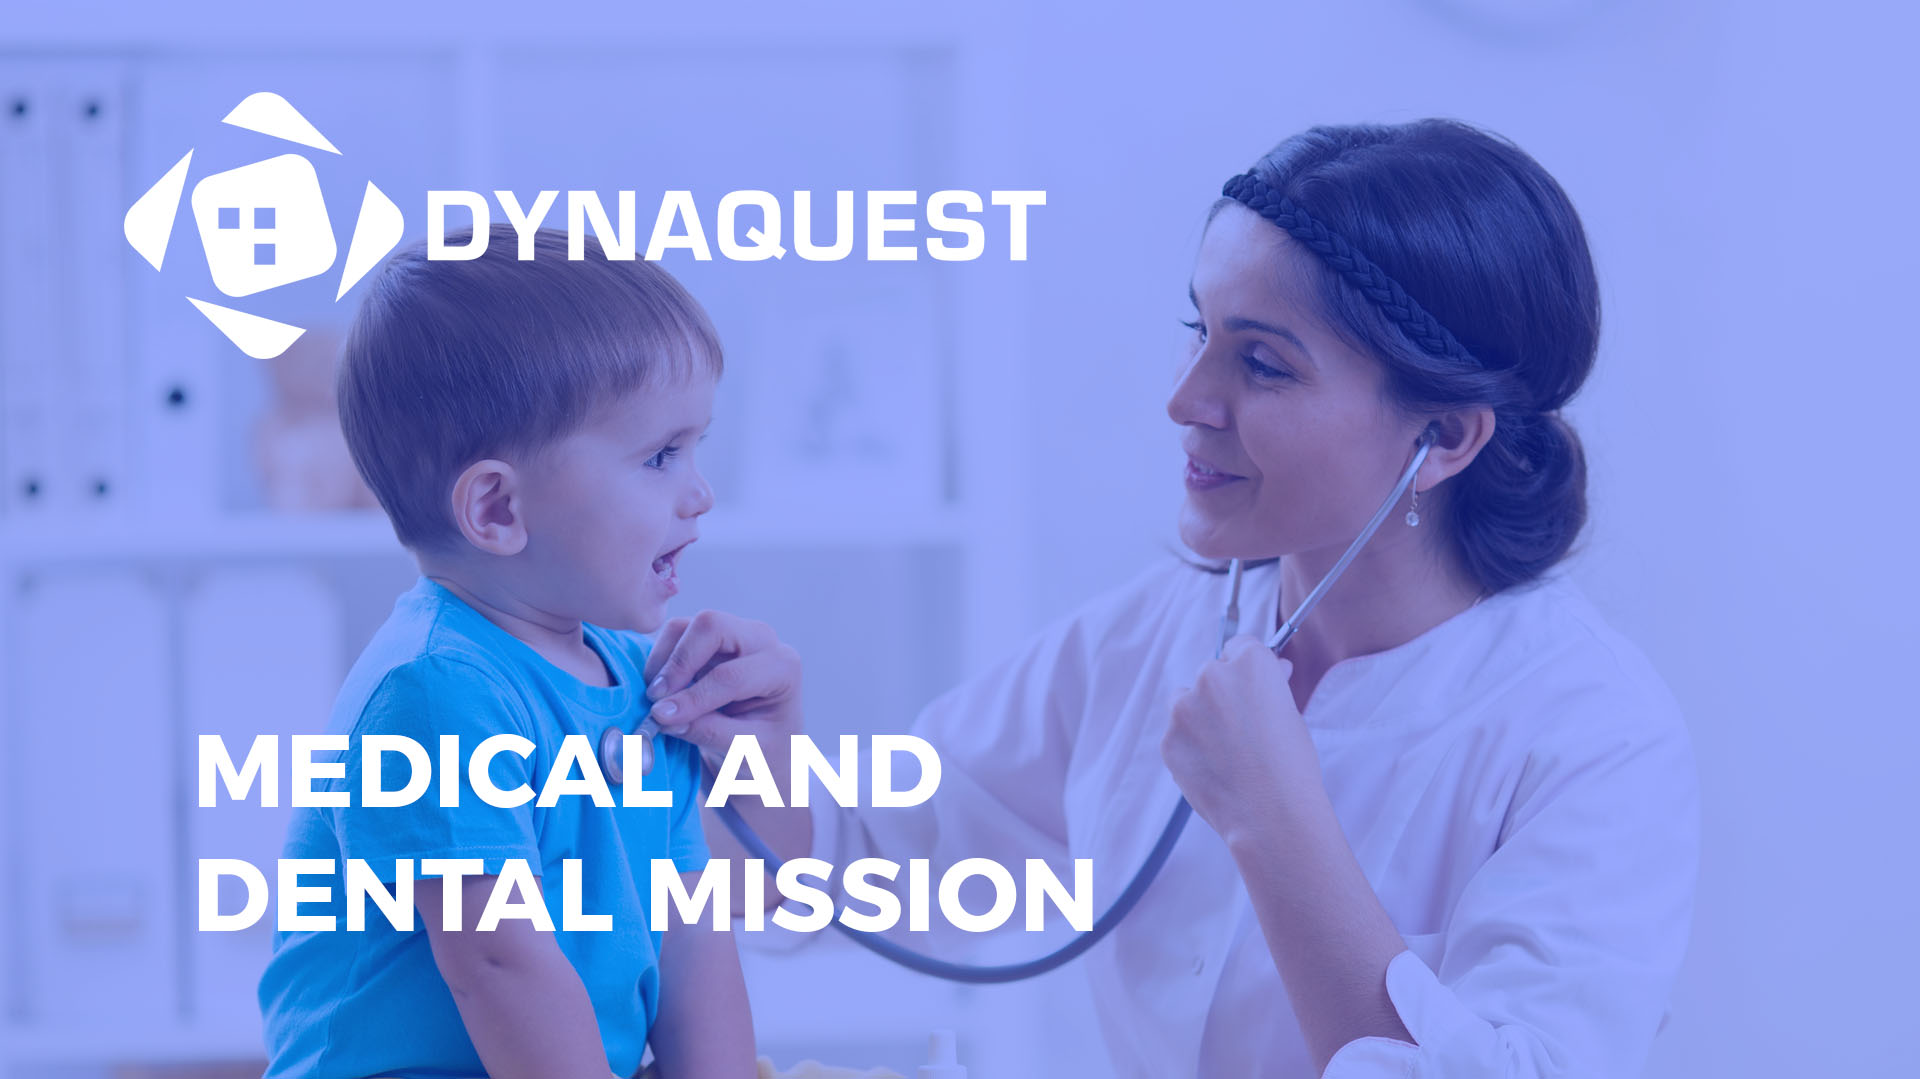 dynaquest medical and dental mission